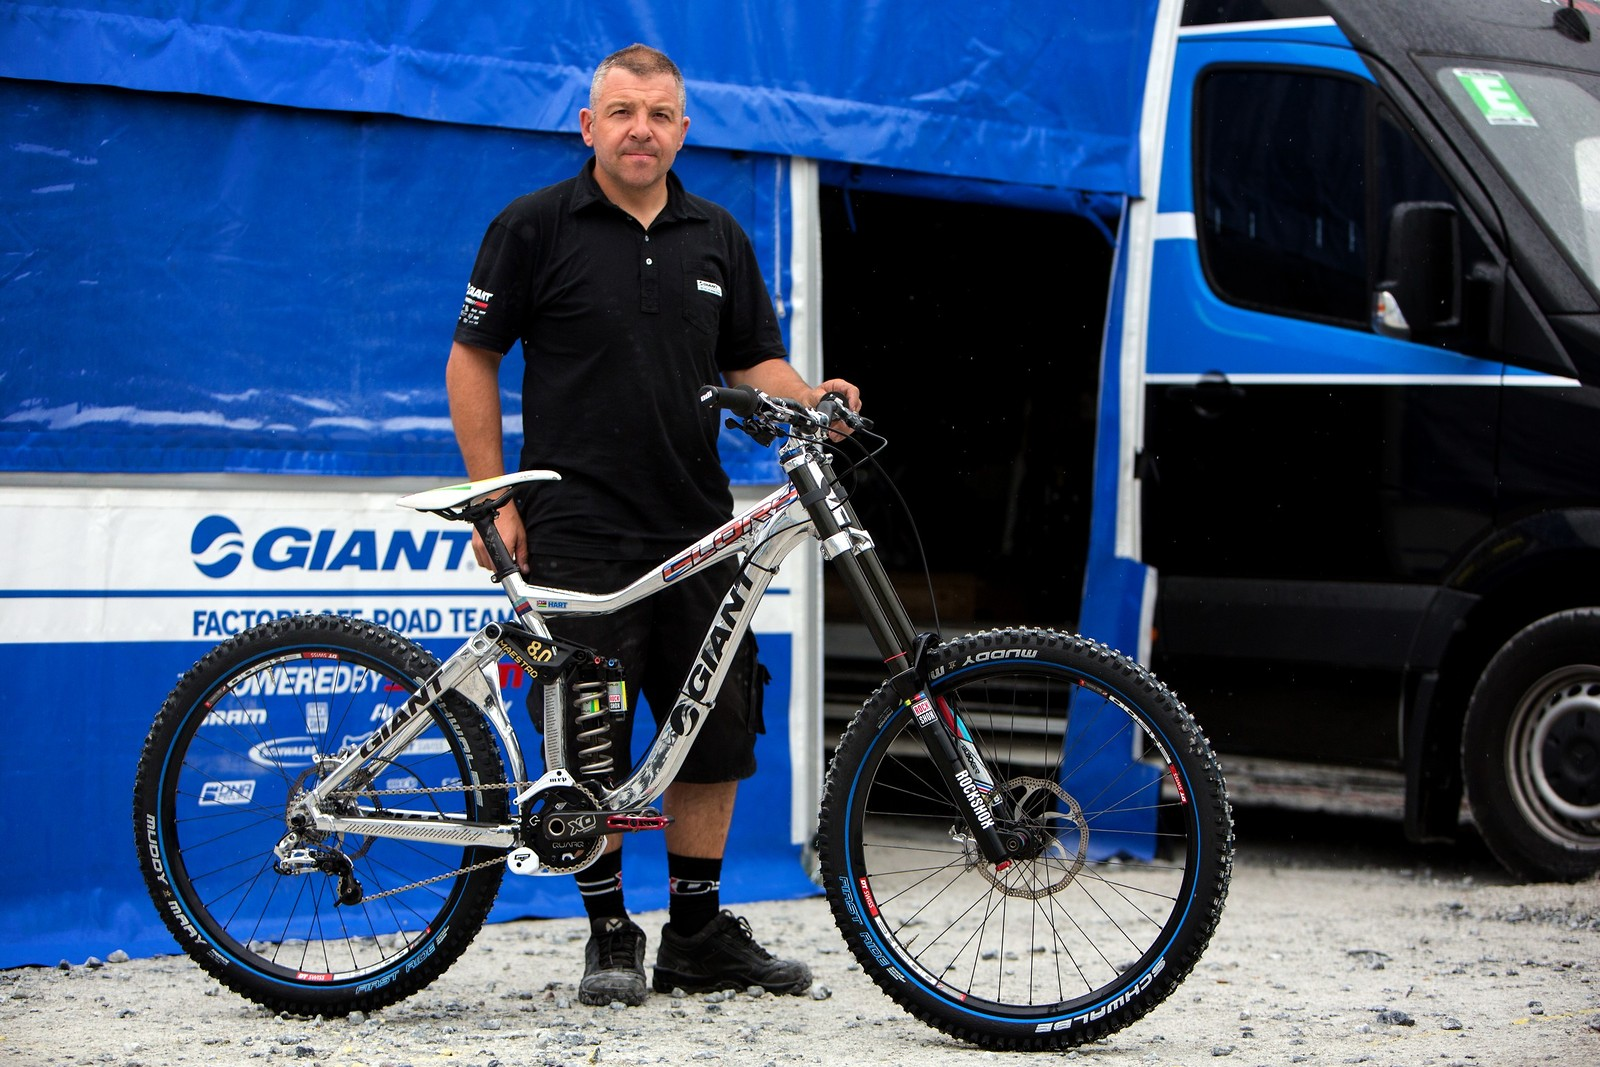 Danny Hart's Giant Glory at Fort William, Help for Heroes - jacobgibbins - Mountain Biking Pictures - Vital MTB